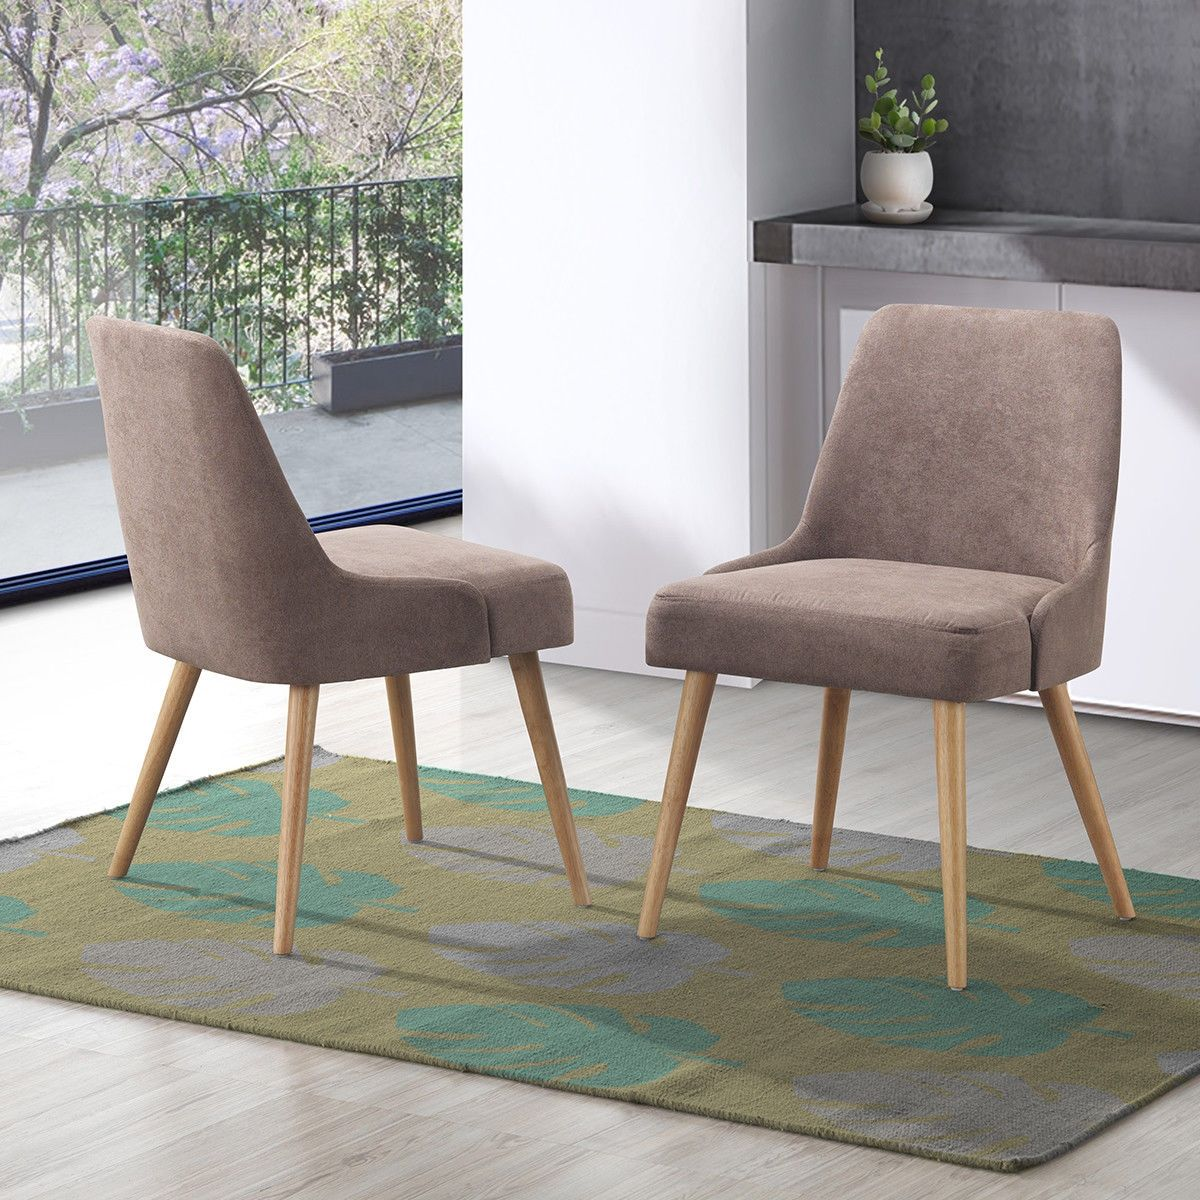 Set of 2 Accent Upholstered Seat Elegant Dining Side Chairs